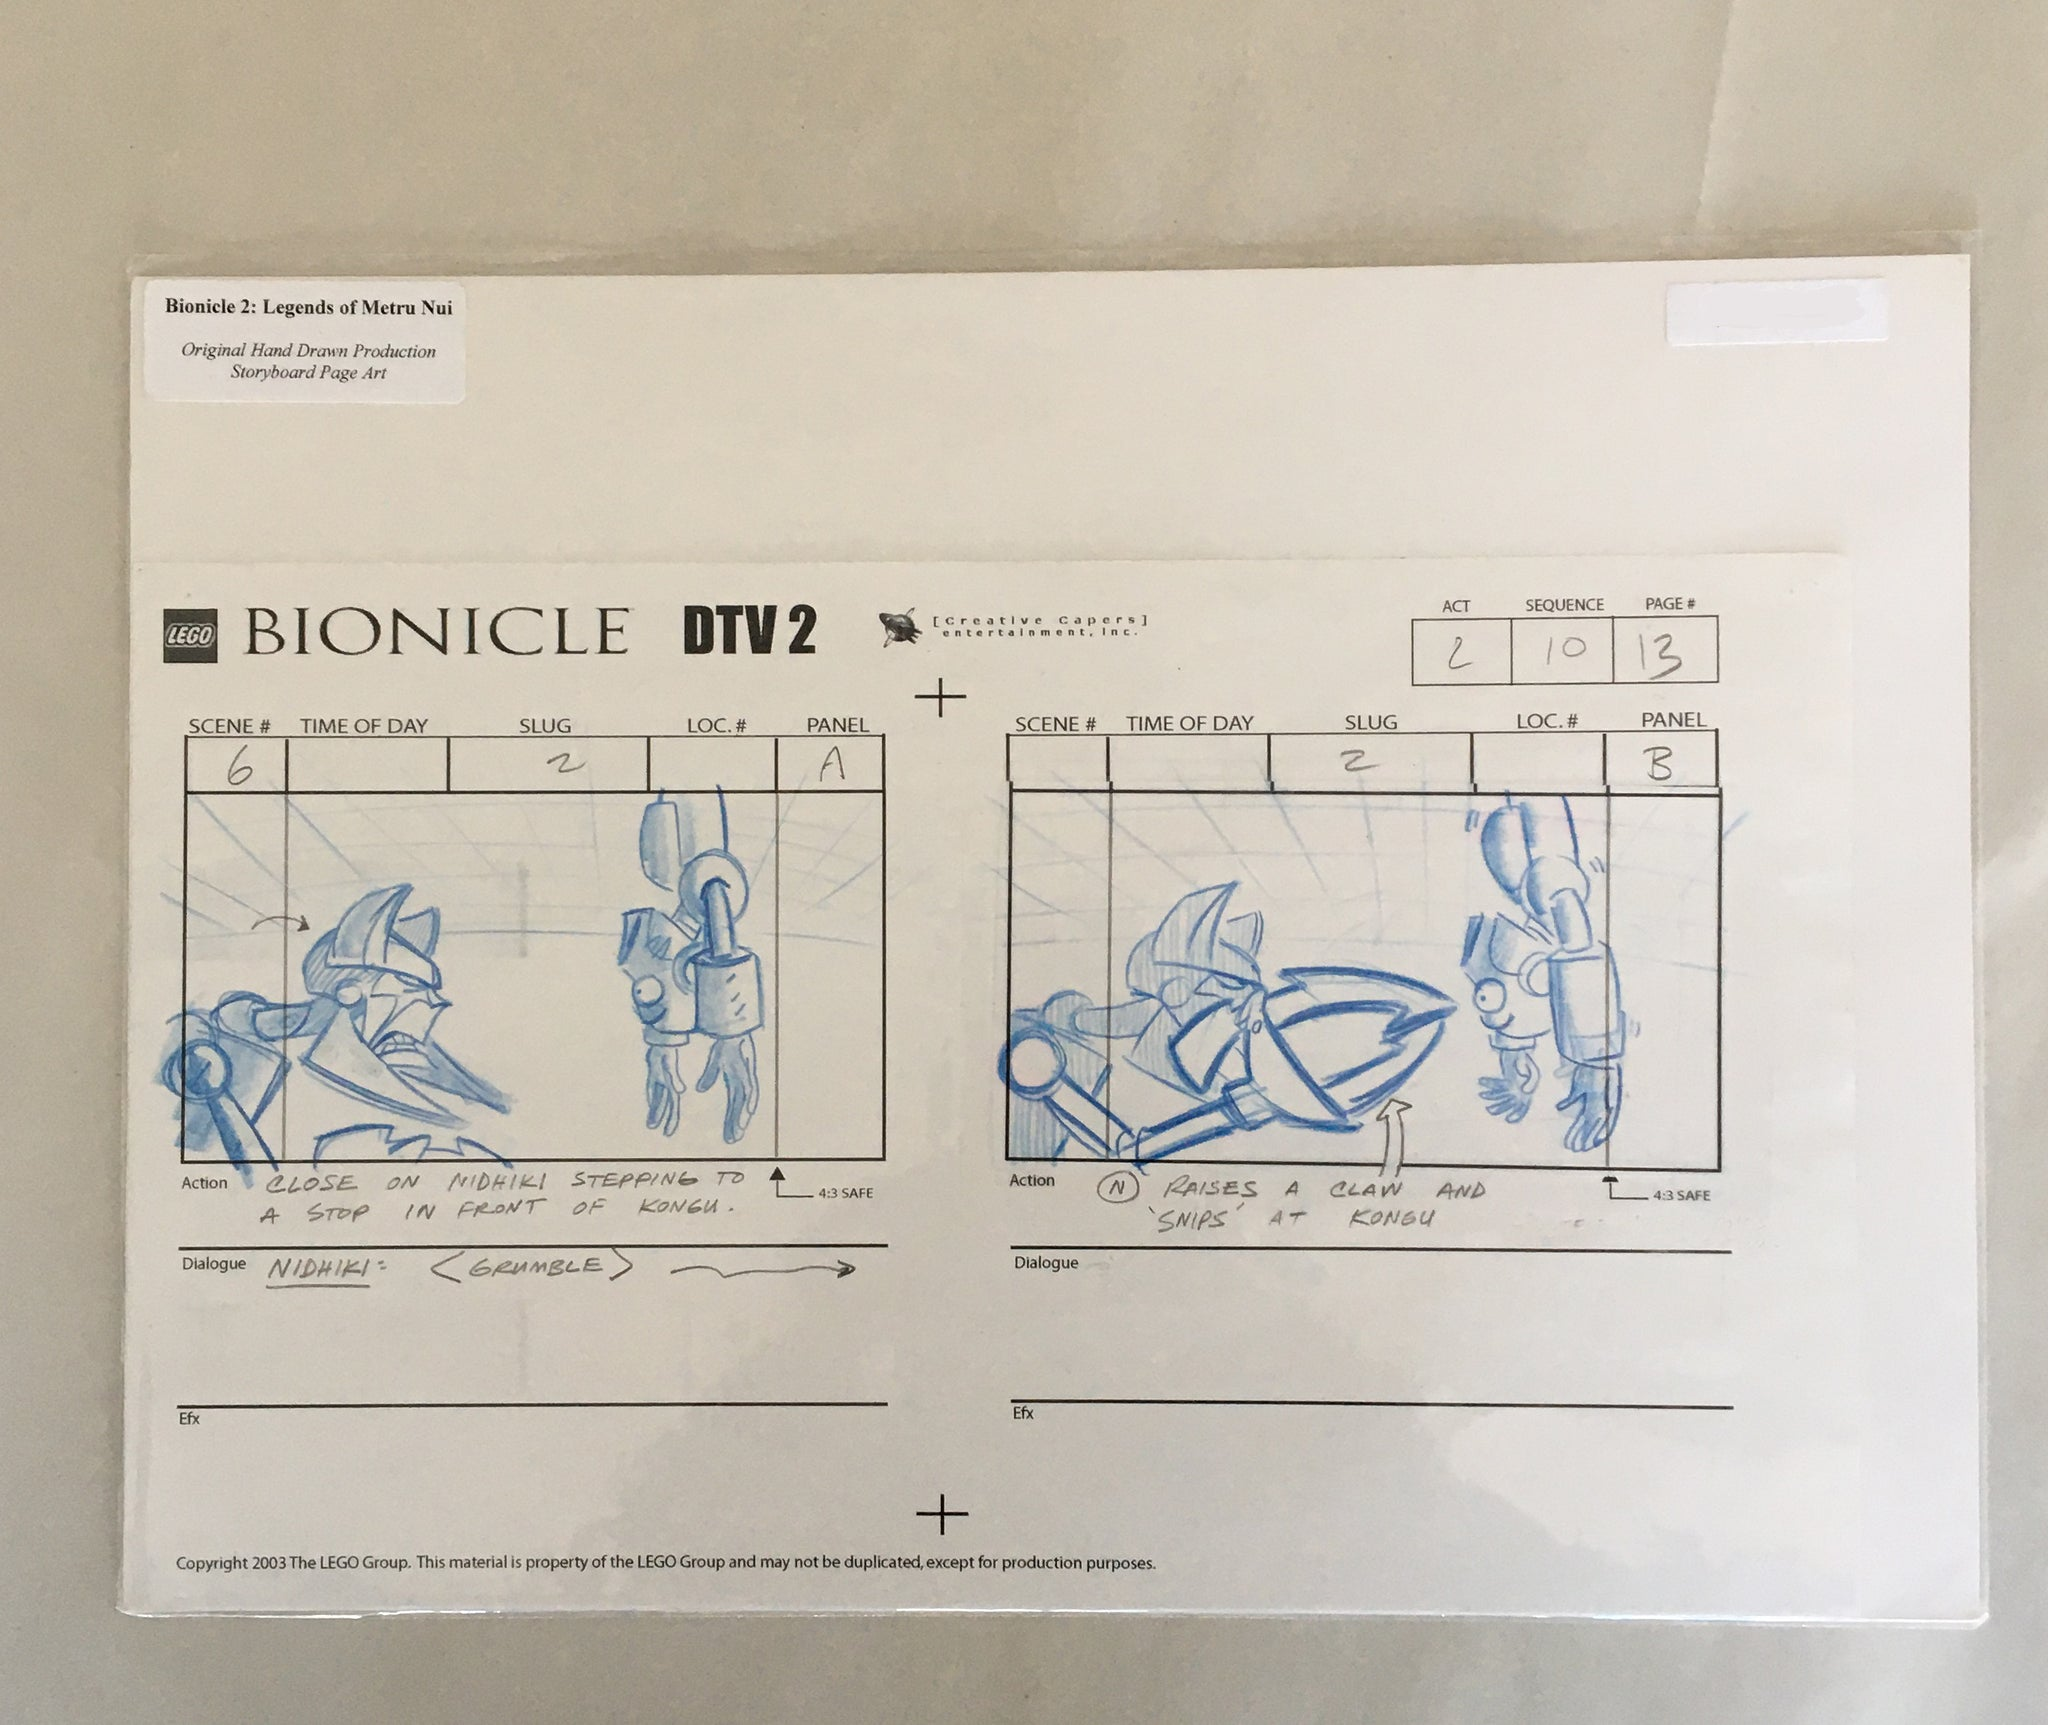 Lego Bionicle StoryBoard 4 (EX0061) - Animation Legends